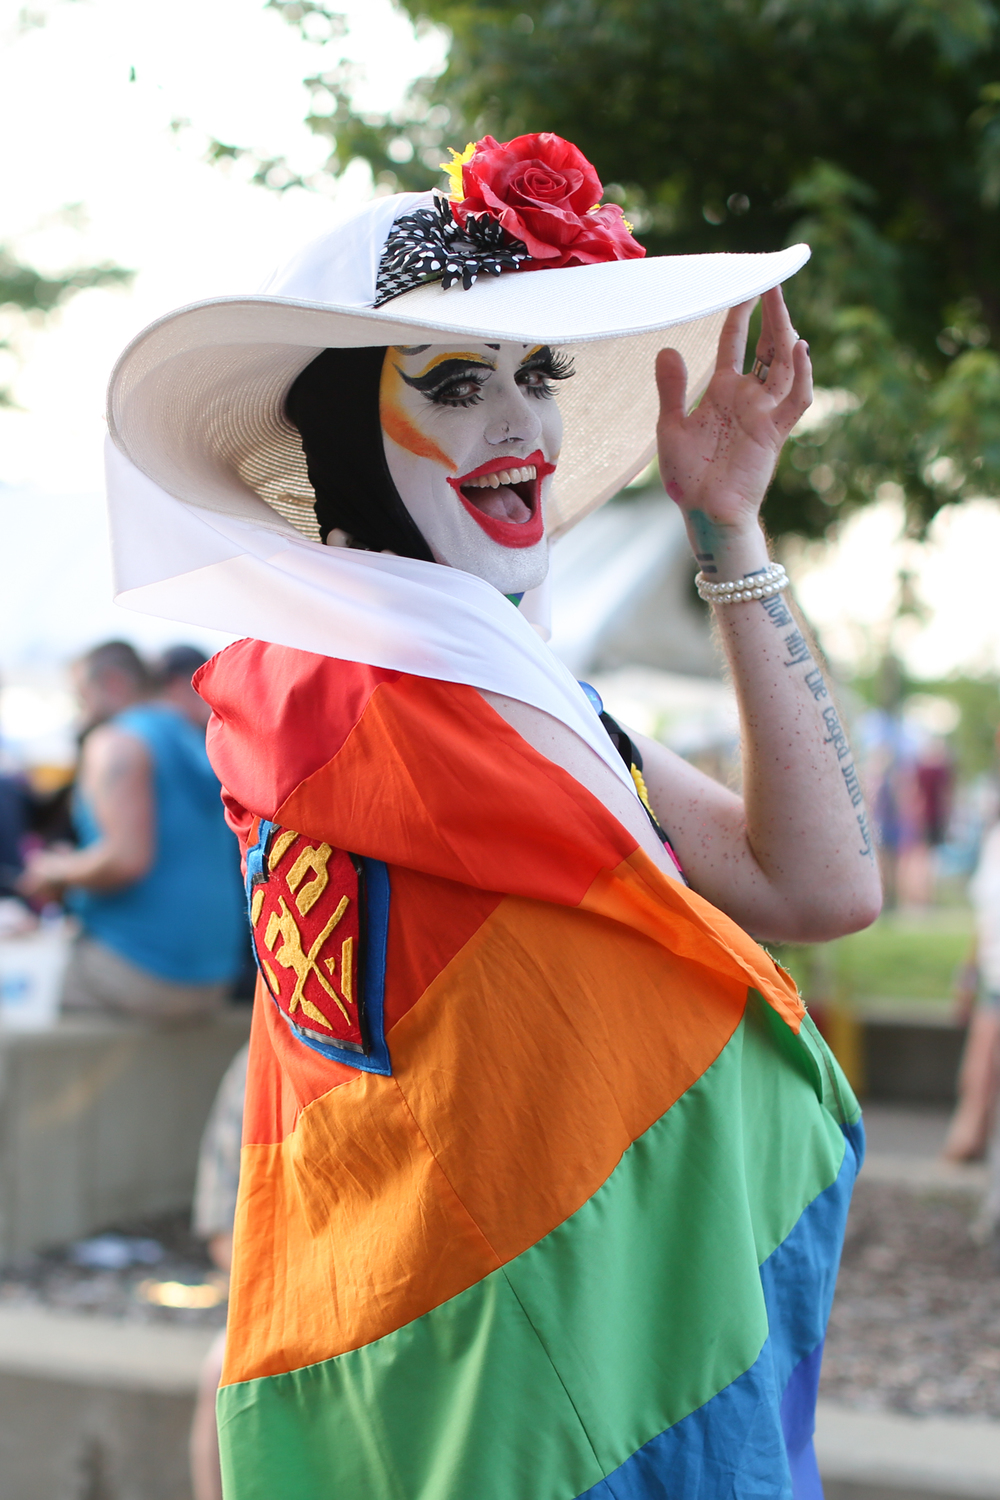 PRIDE W-FEVA 2015 EDITED CRYSTAL LUDWICK PHOTO (83 of 83).jpg